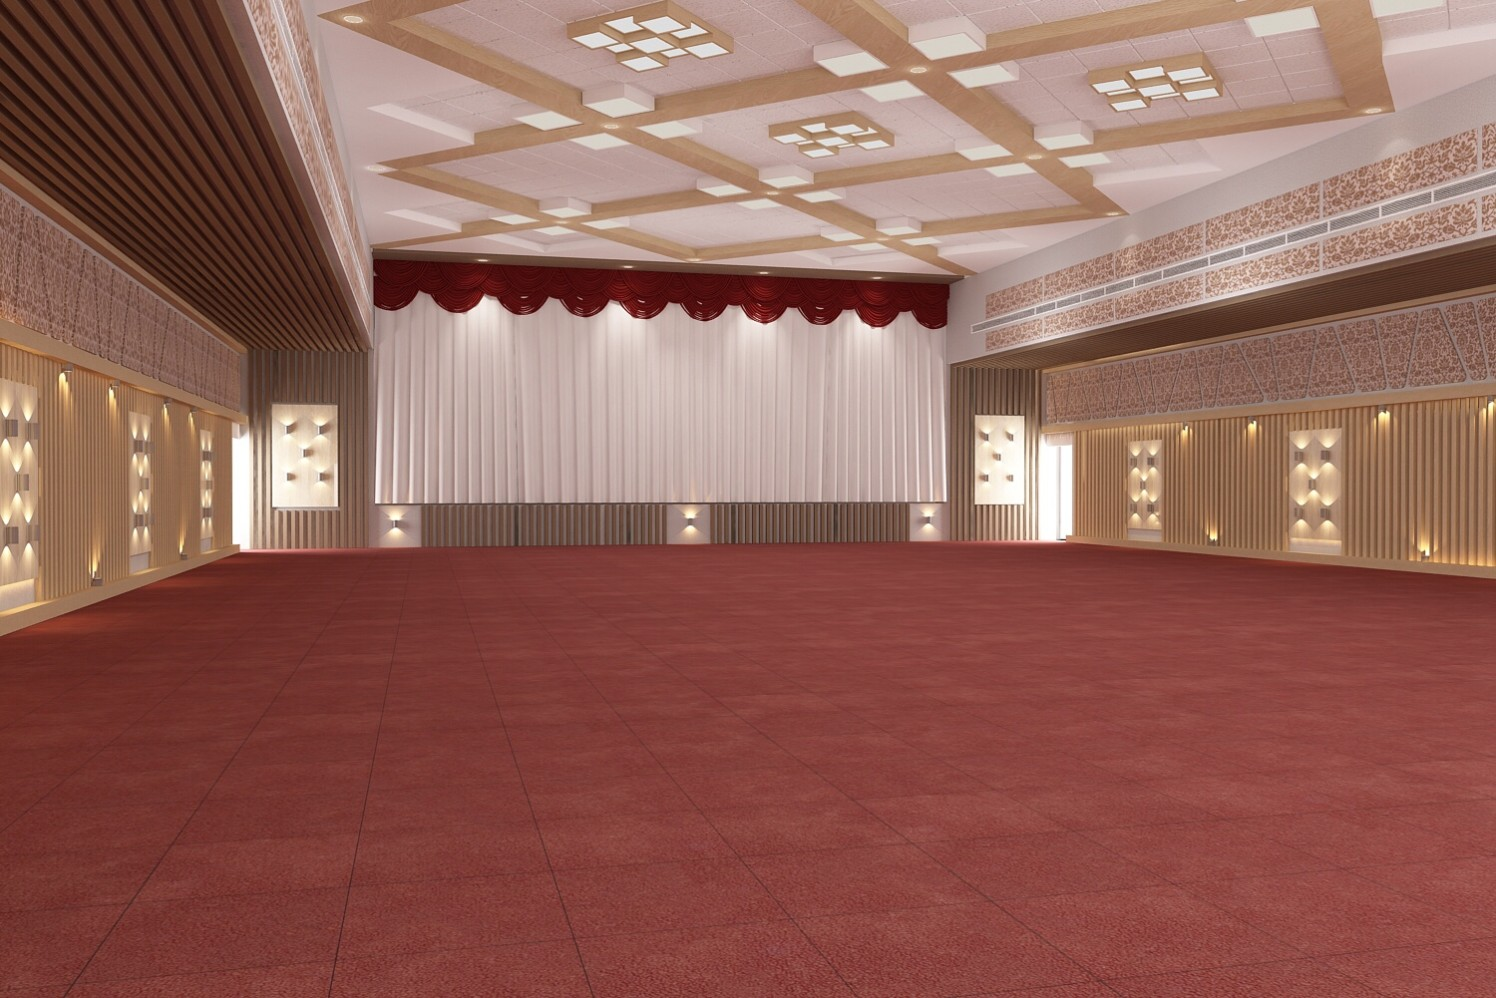 3D Design Of Hall by setu.patel | Interior Design Photos & Ideas